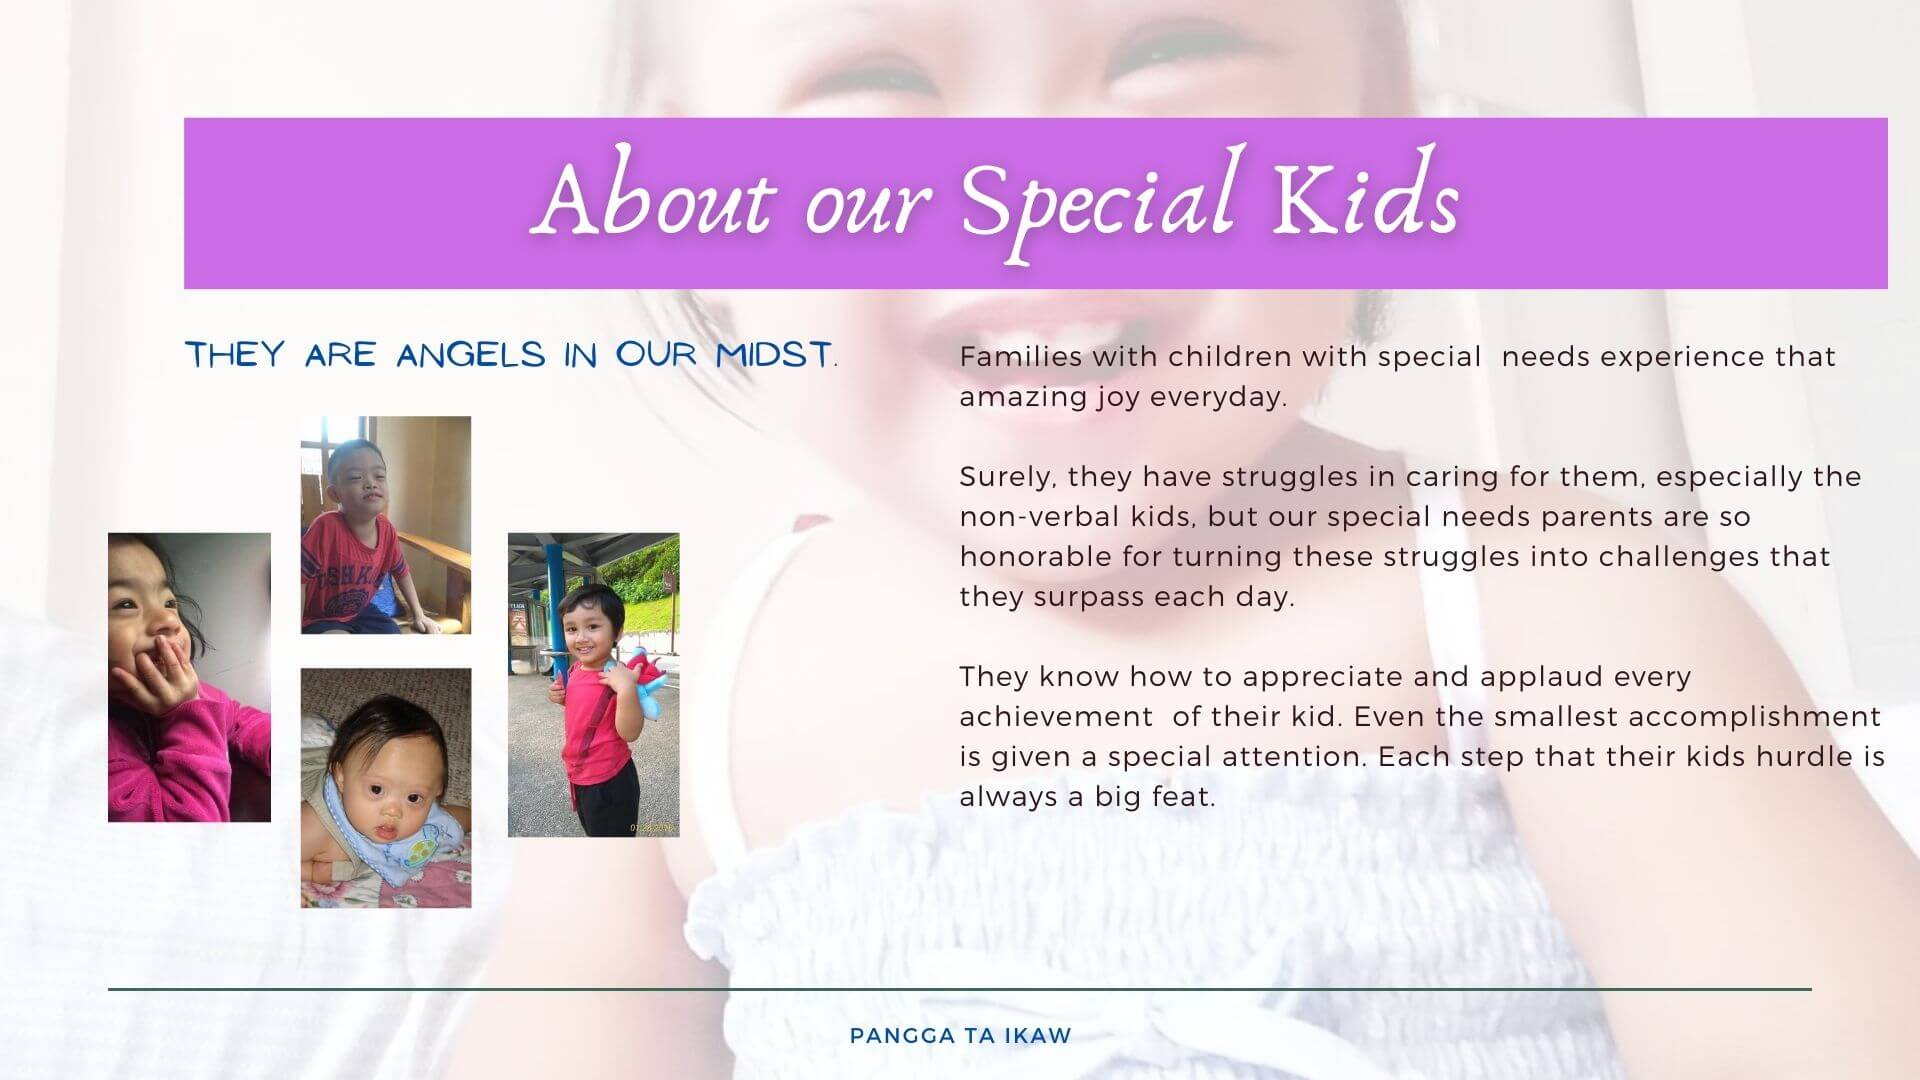 About our special kids, Pangga ta ikaw